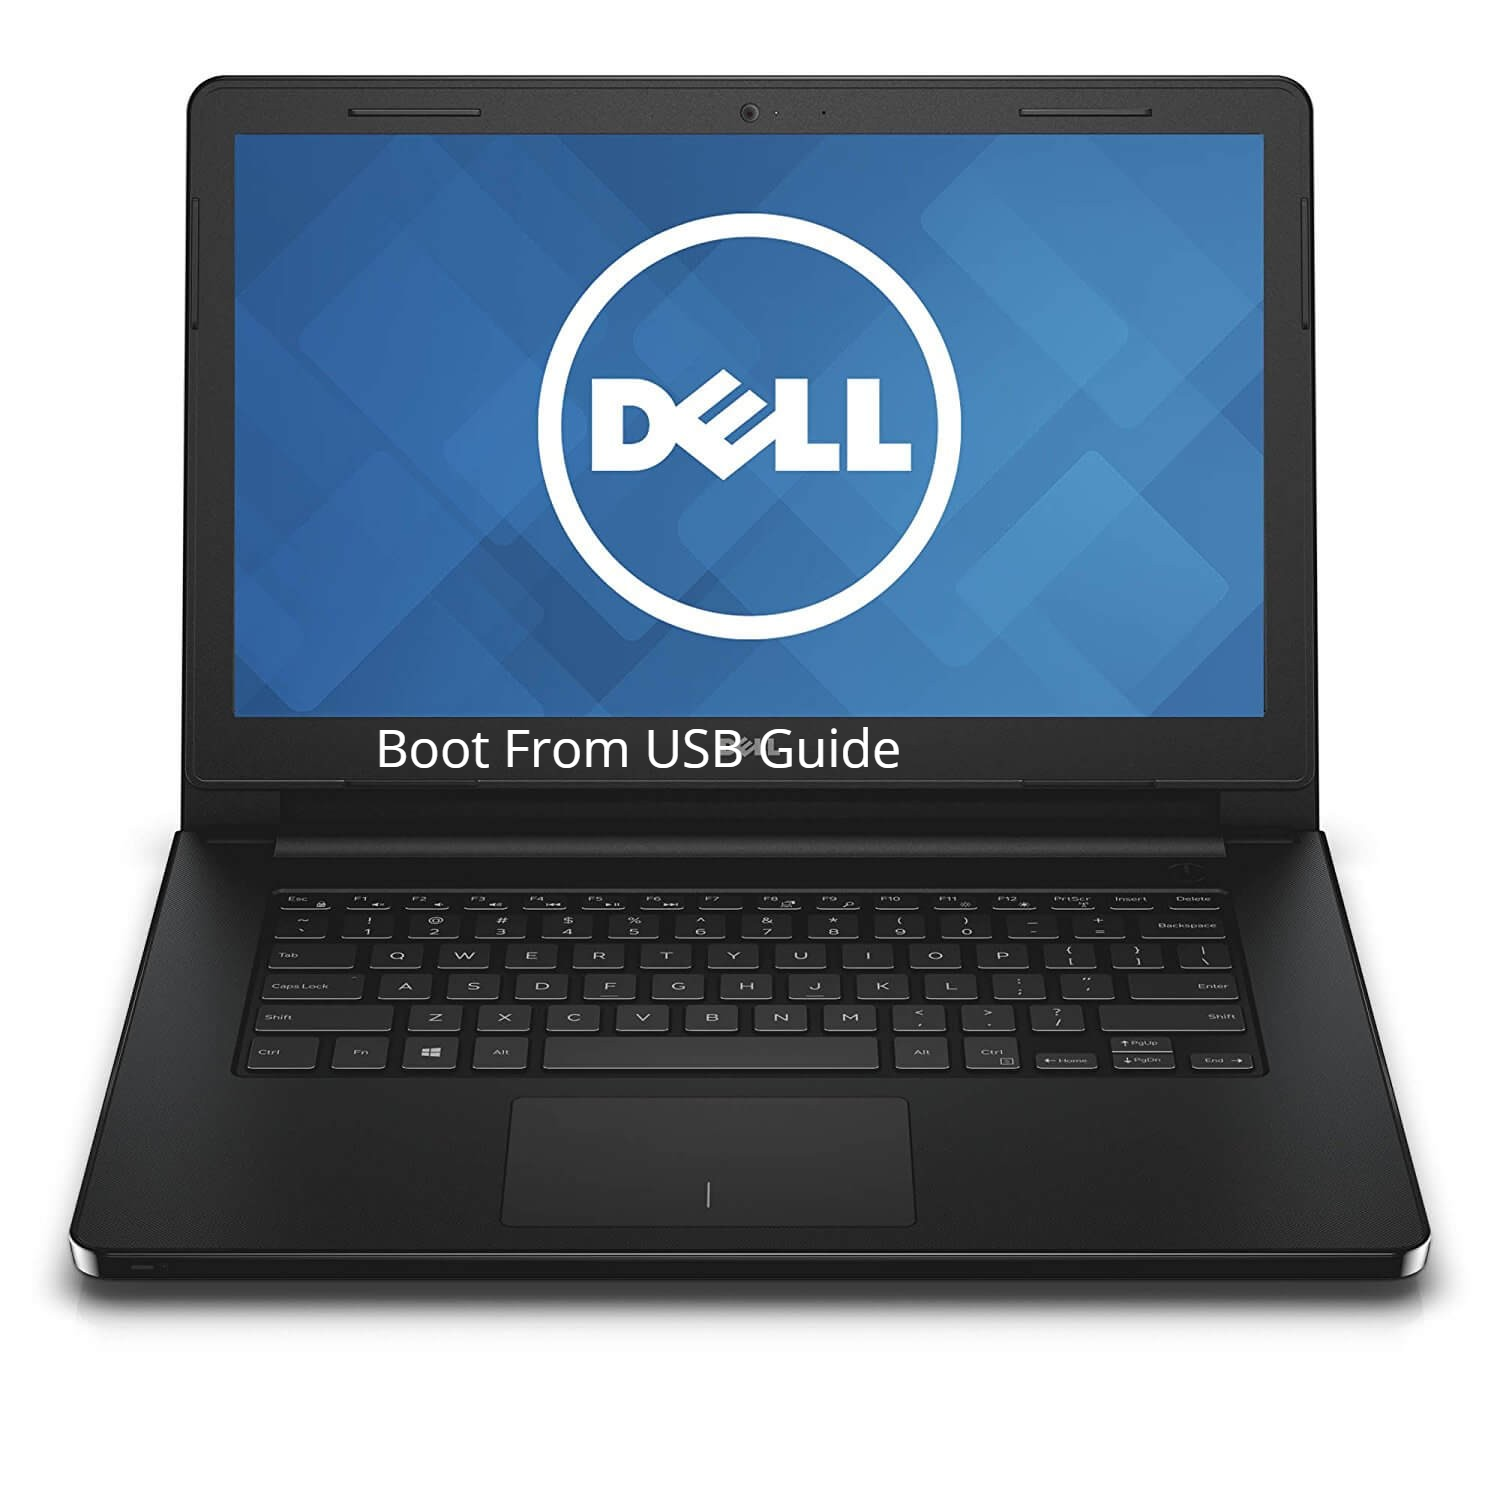 Dell Inspiron 3567 Boot From USB